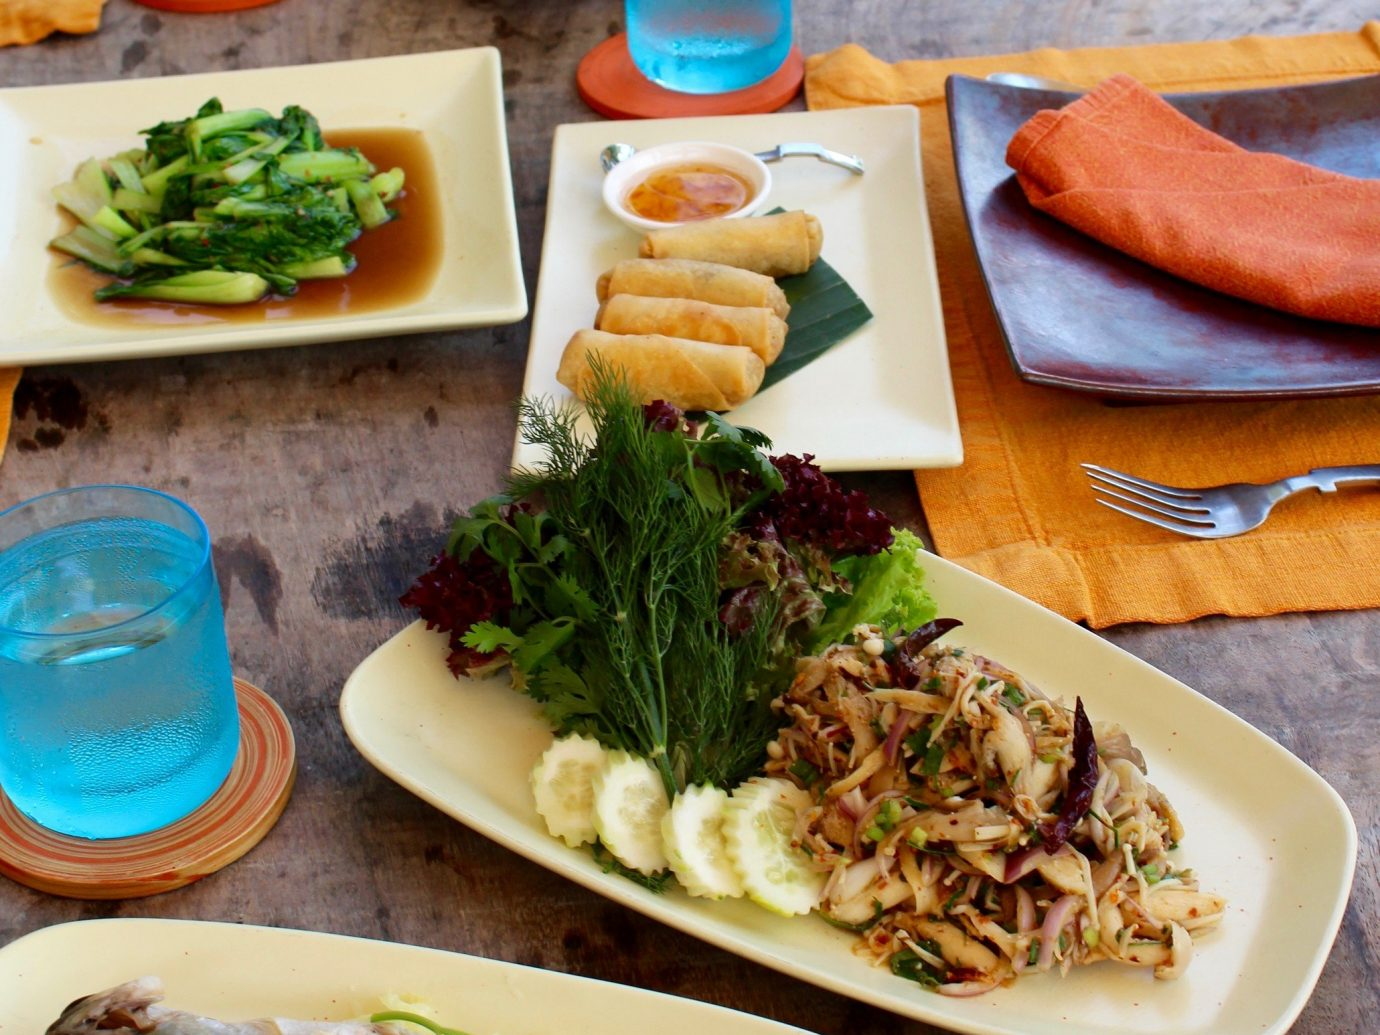 Meal at Soneva Kiri Resort, Thailand